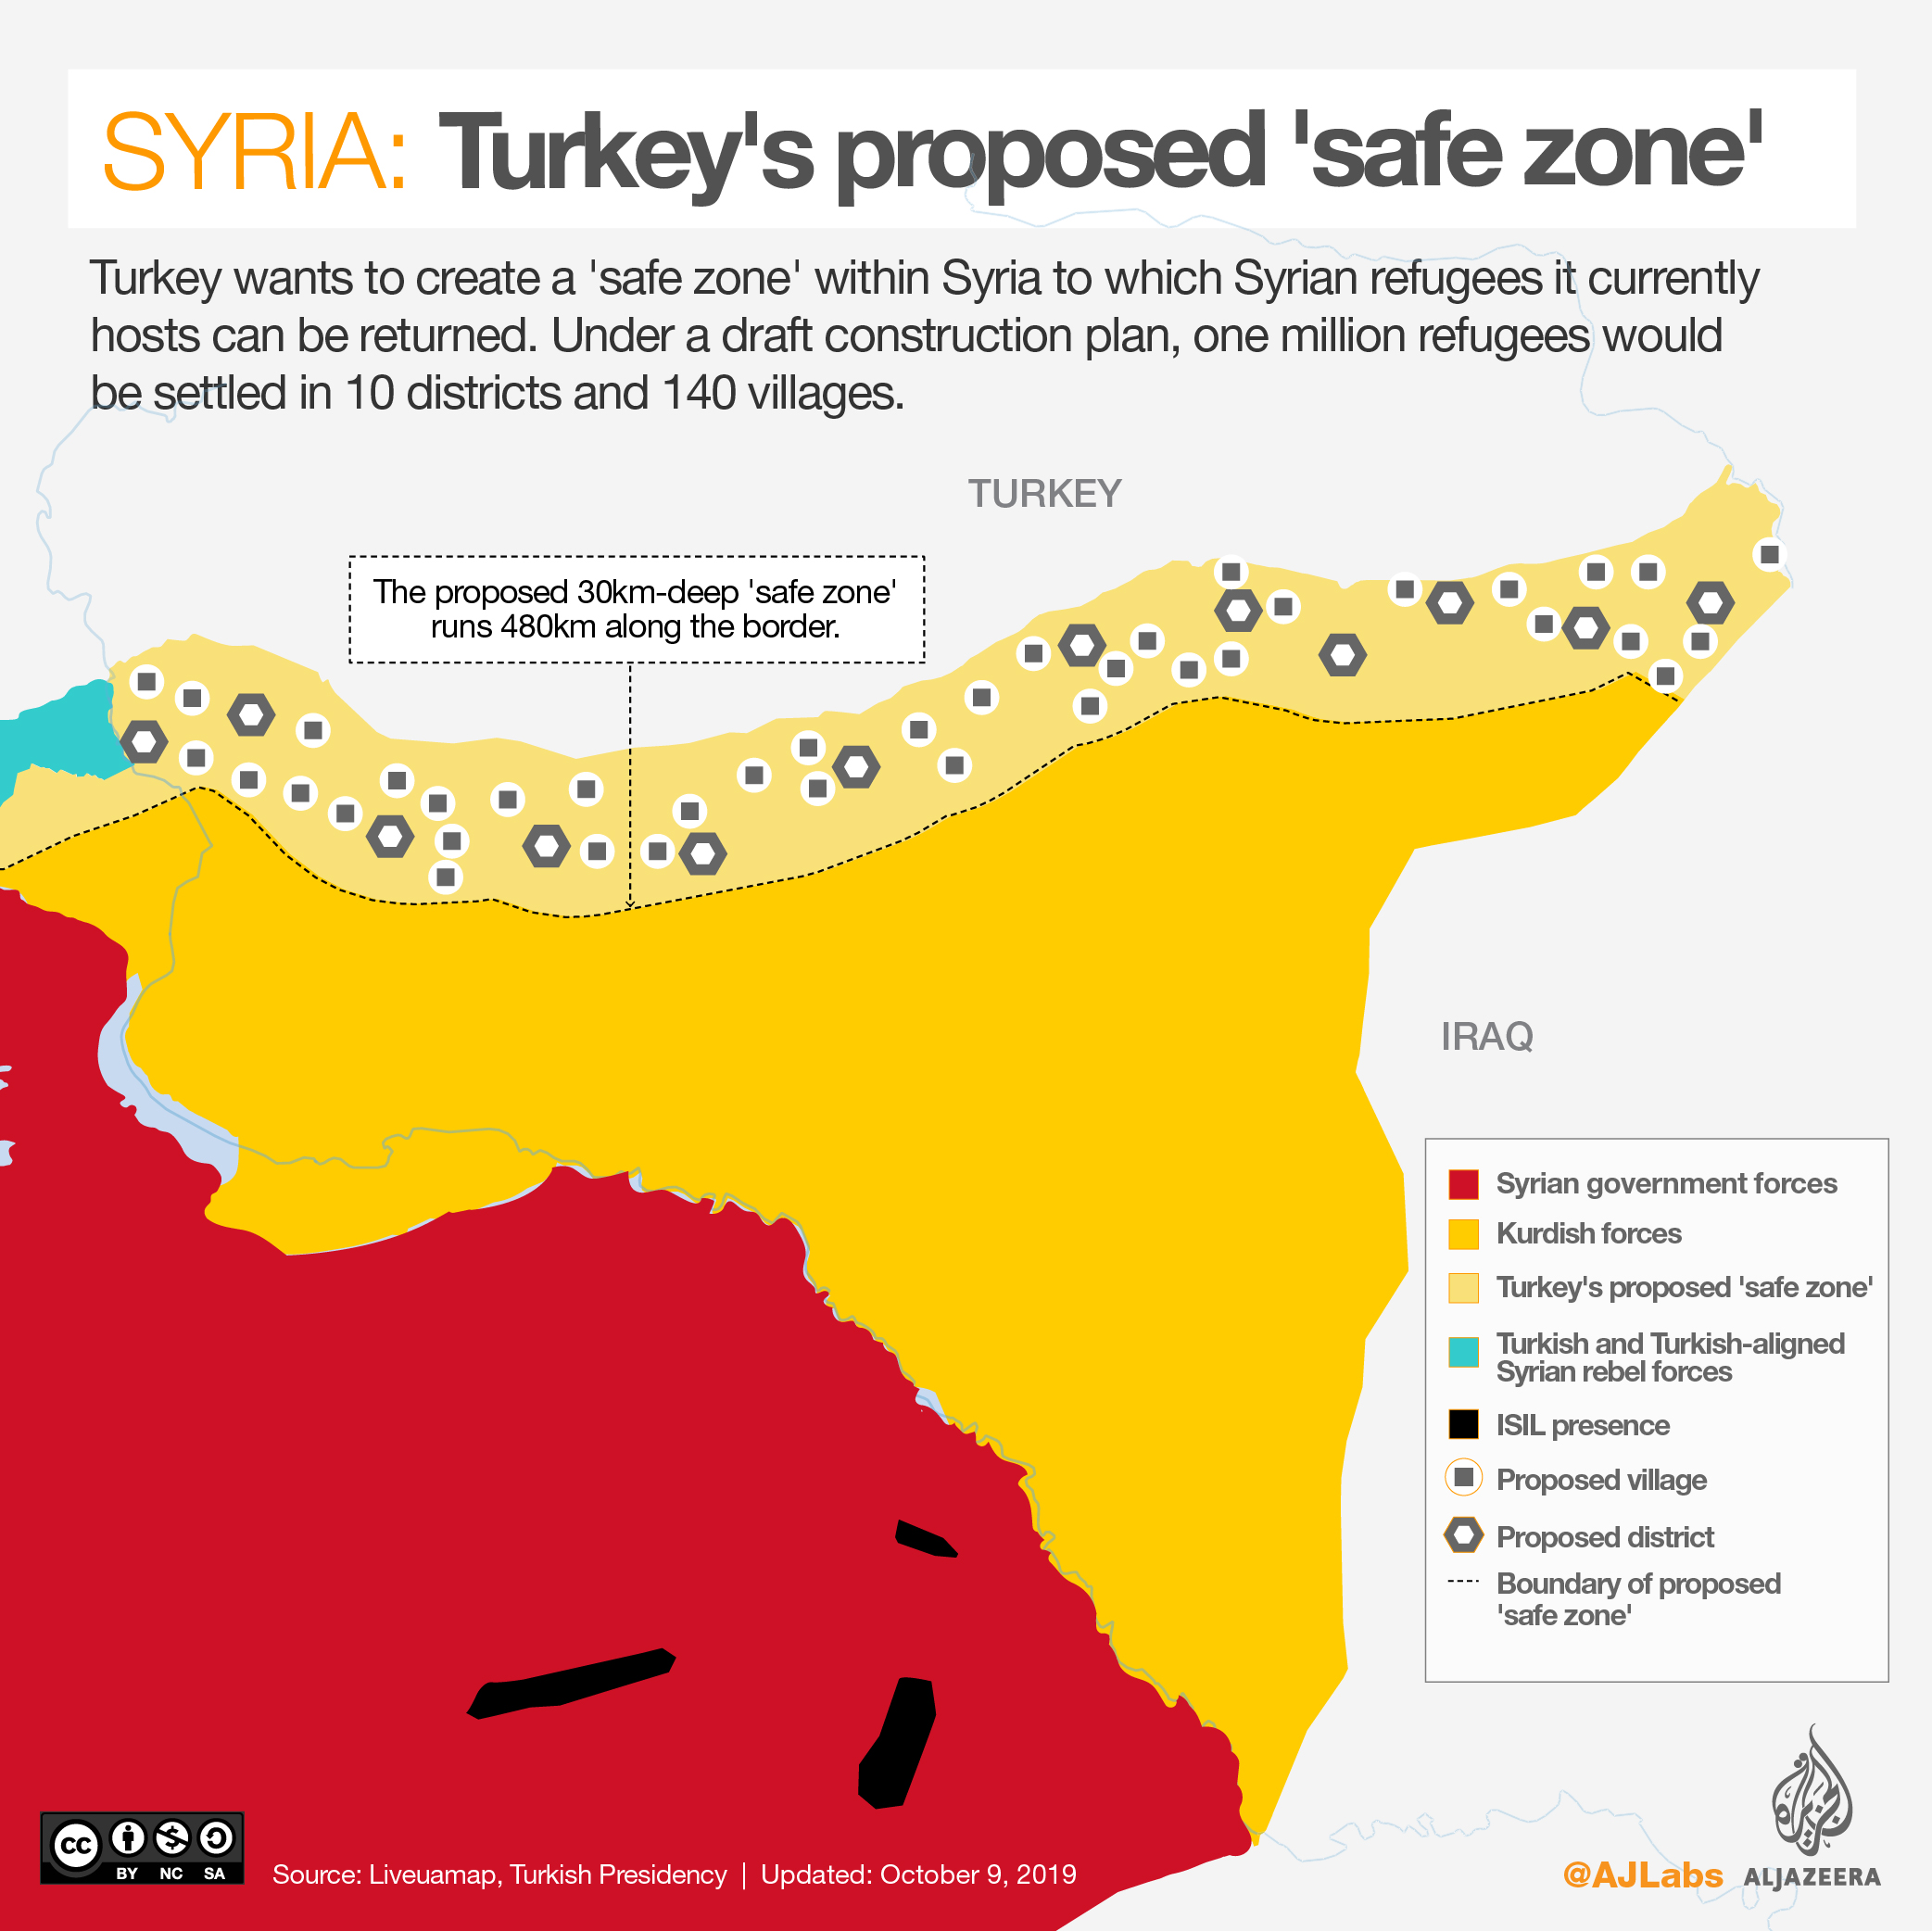 INTERACTIVE: Syria 'safe zone' map OCT 9 2019